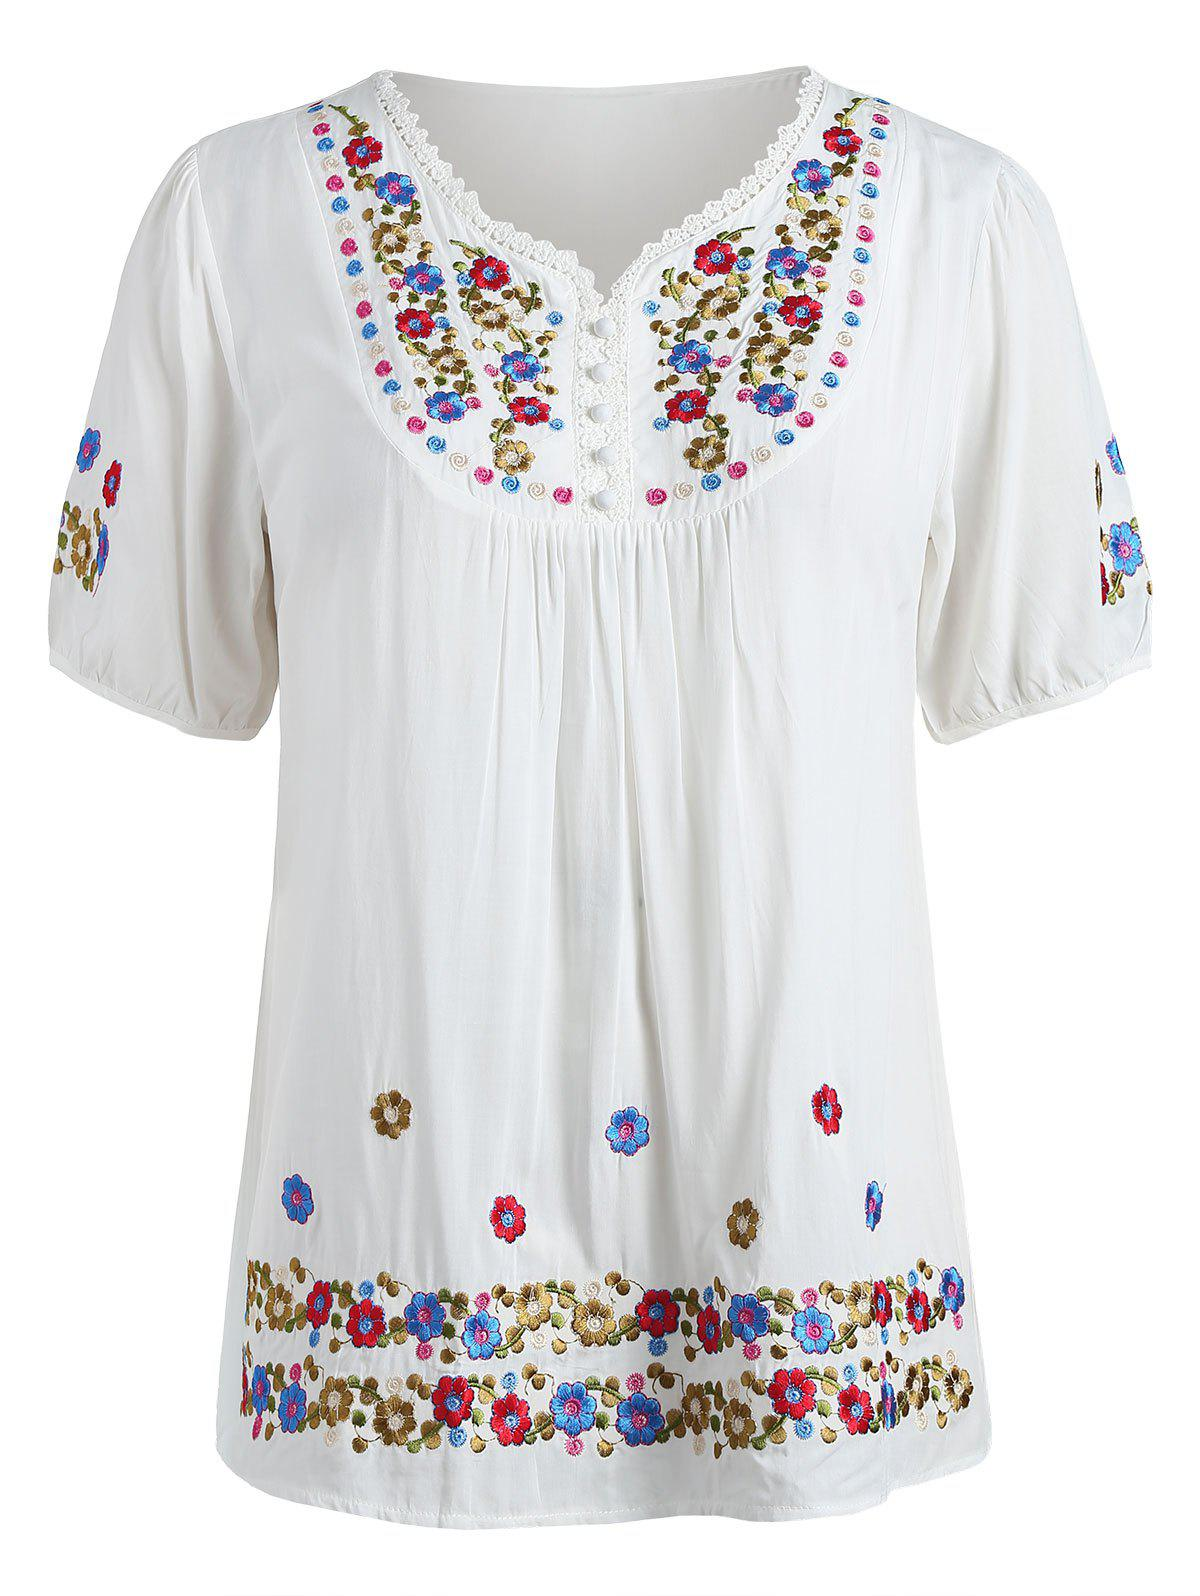 Hot Floral Embroidery Plus Size Short Sleeve T-shirt